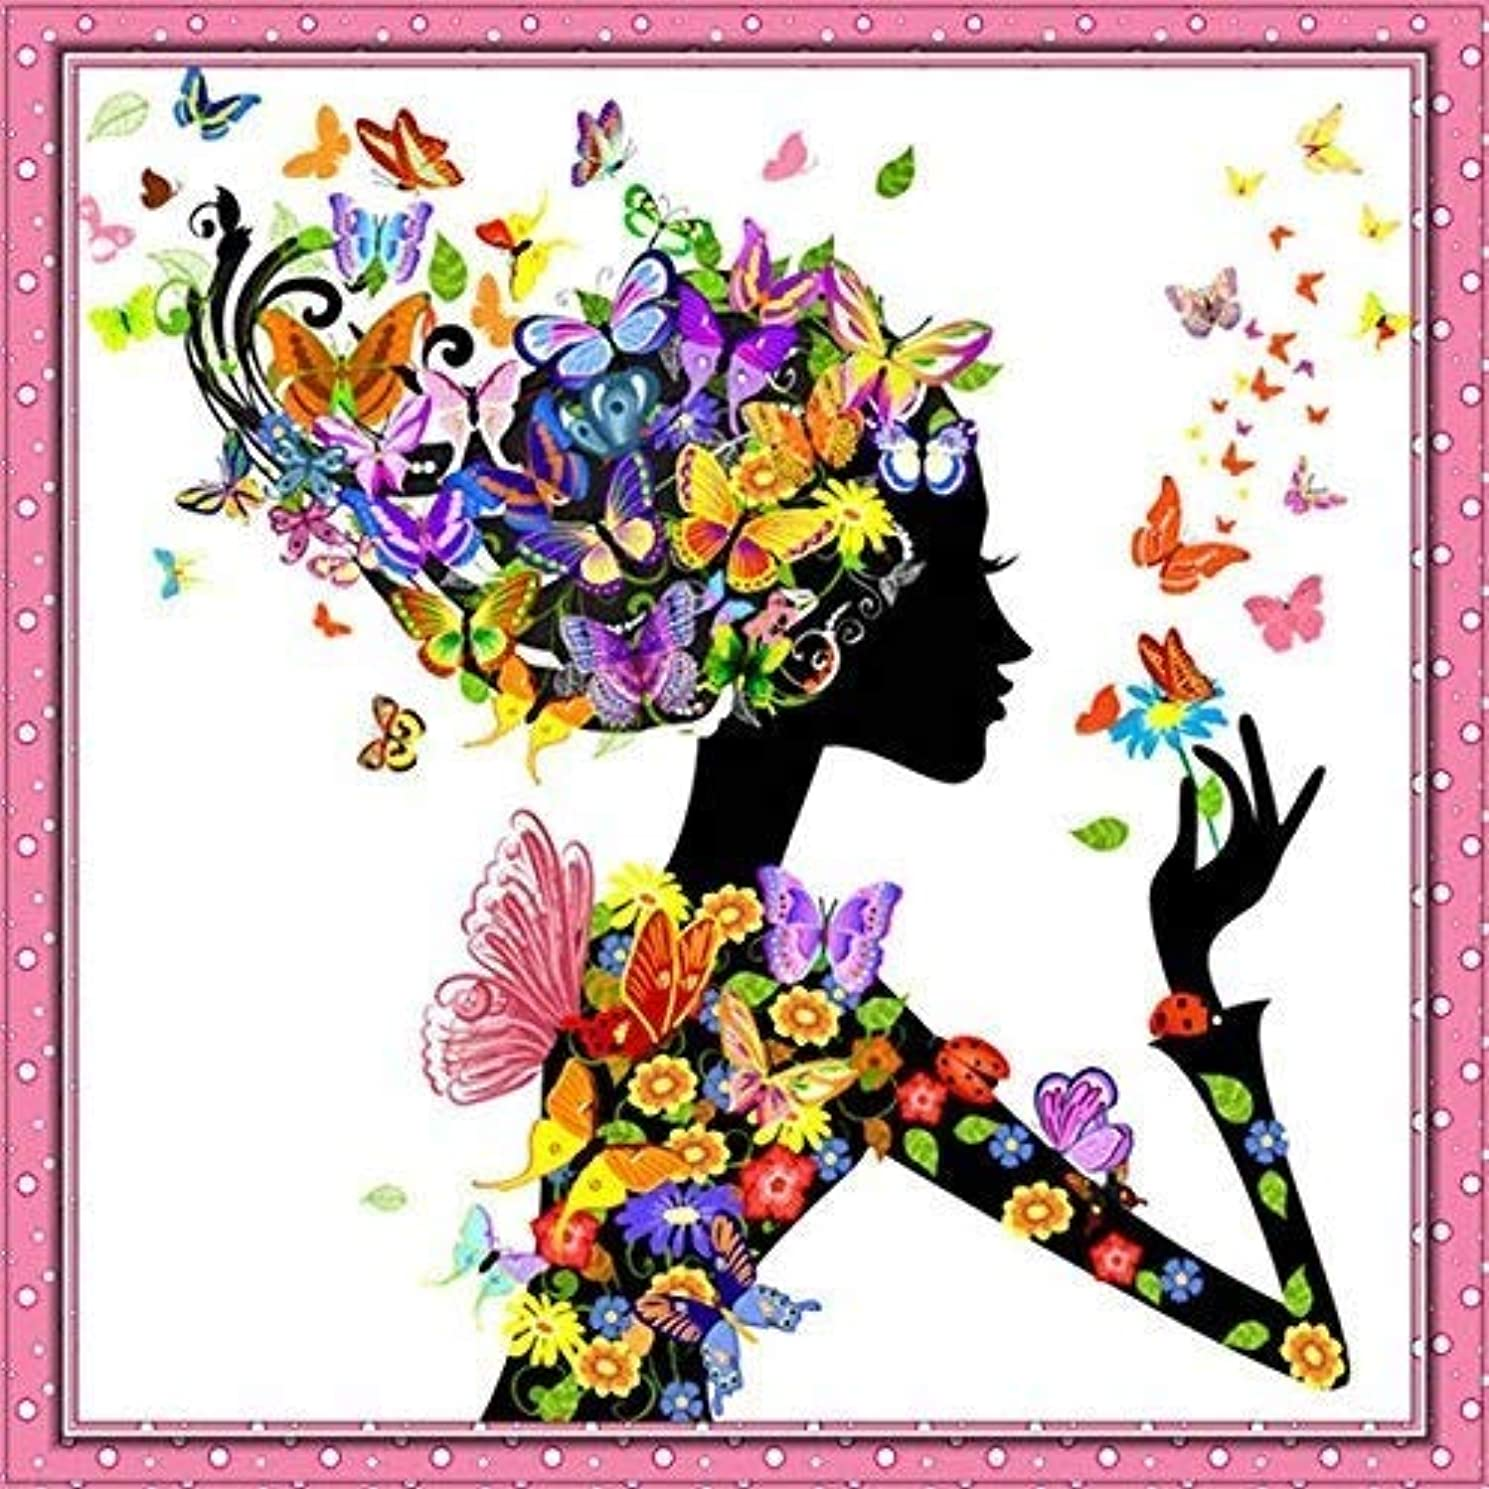 Kisstaker 25x25cm 5D Beautiful Girl with Butterfly DIY Diamond Painting Rhinestone Cross-stitch Kit